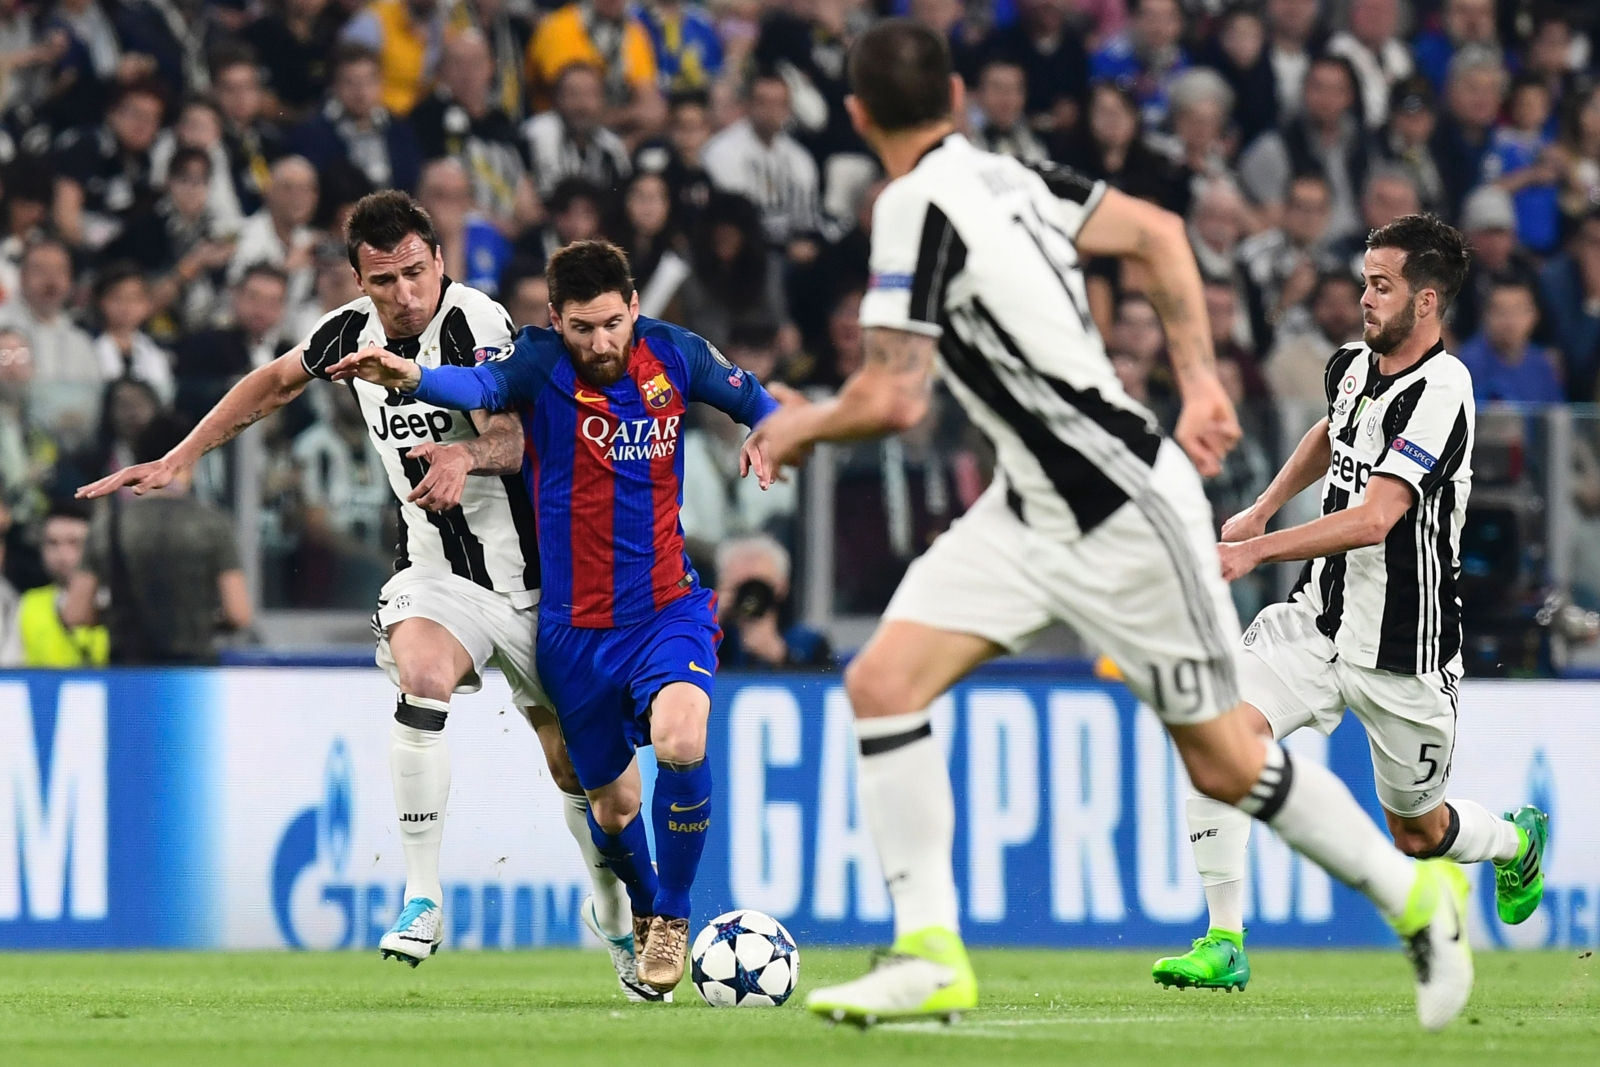 Barcelona knocked out of Champions Leauge by Juventus